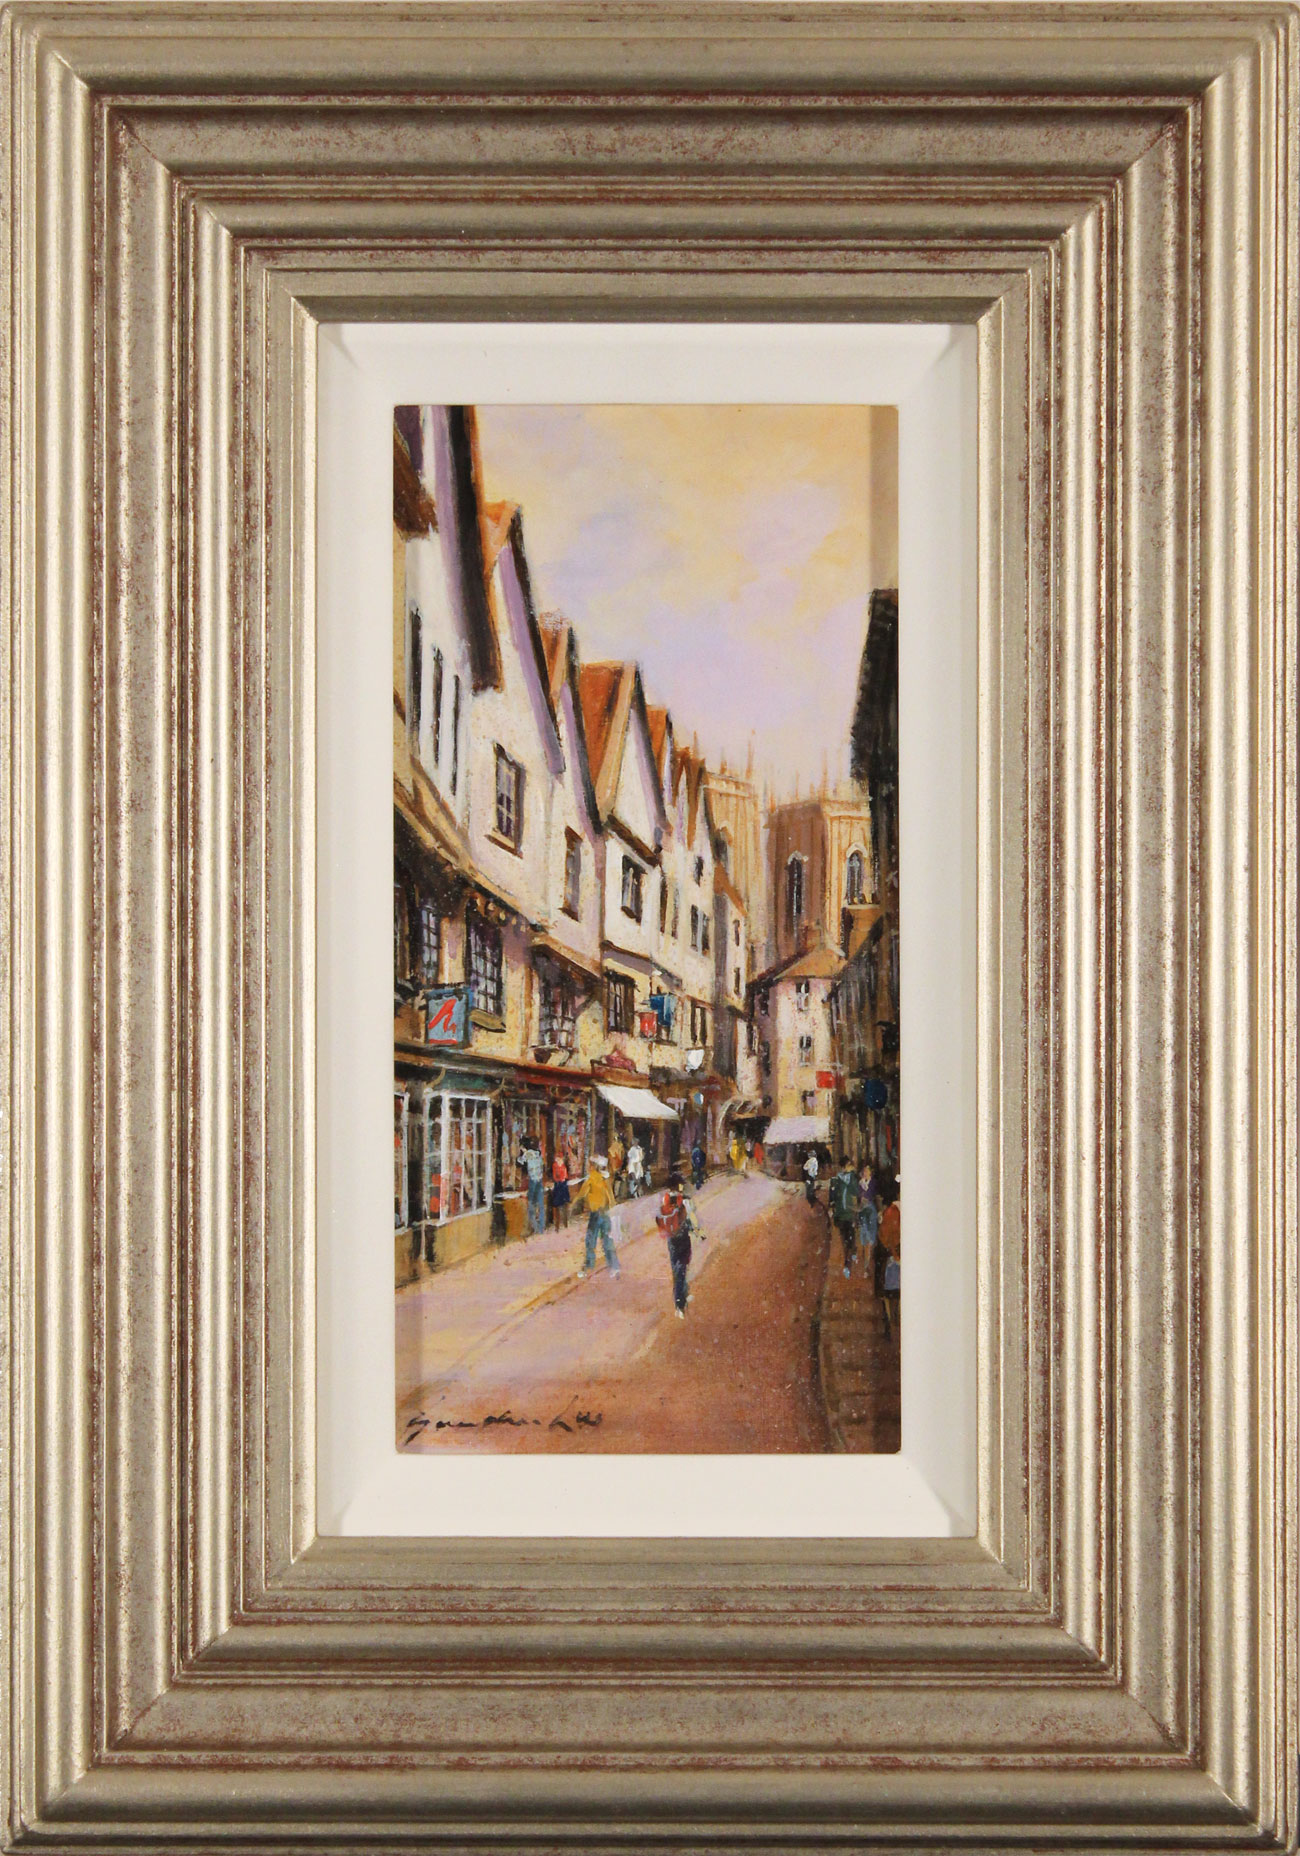 Gordon Lees, Original oil painting on panel, A Day Out in York, click to enlarge